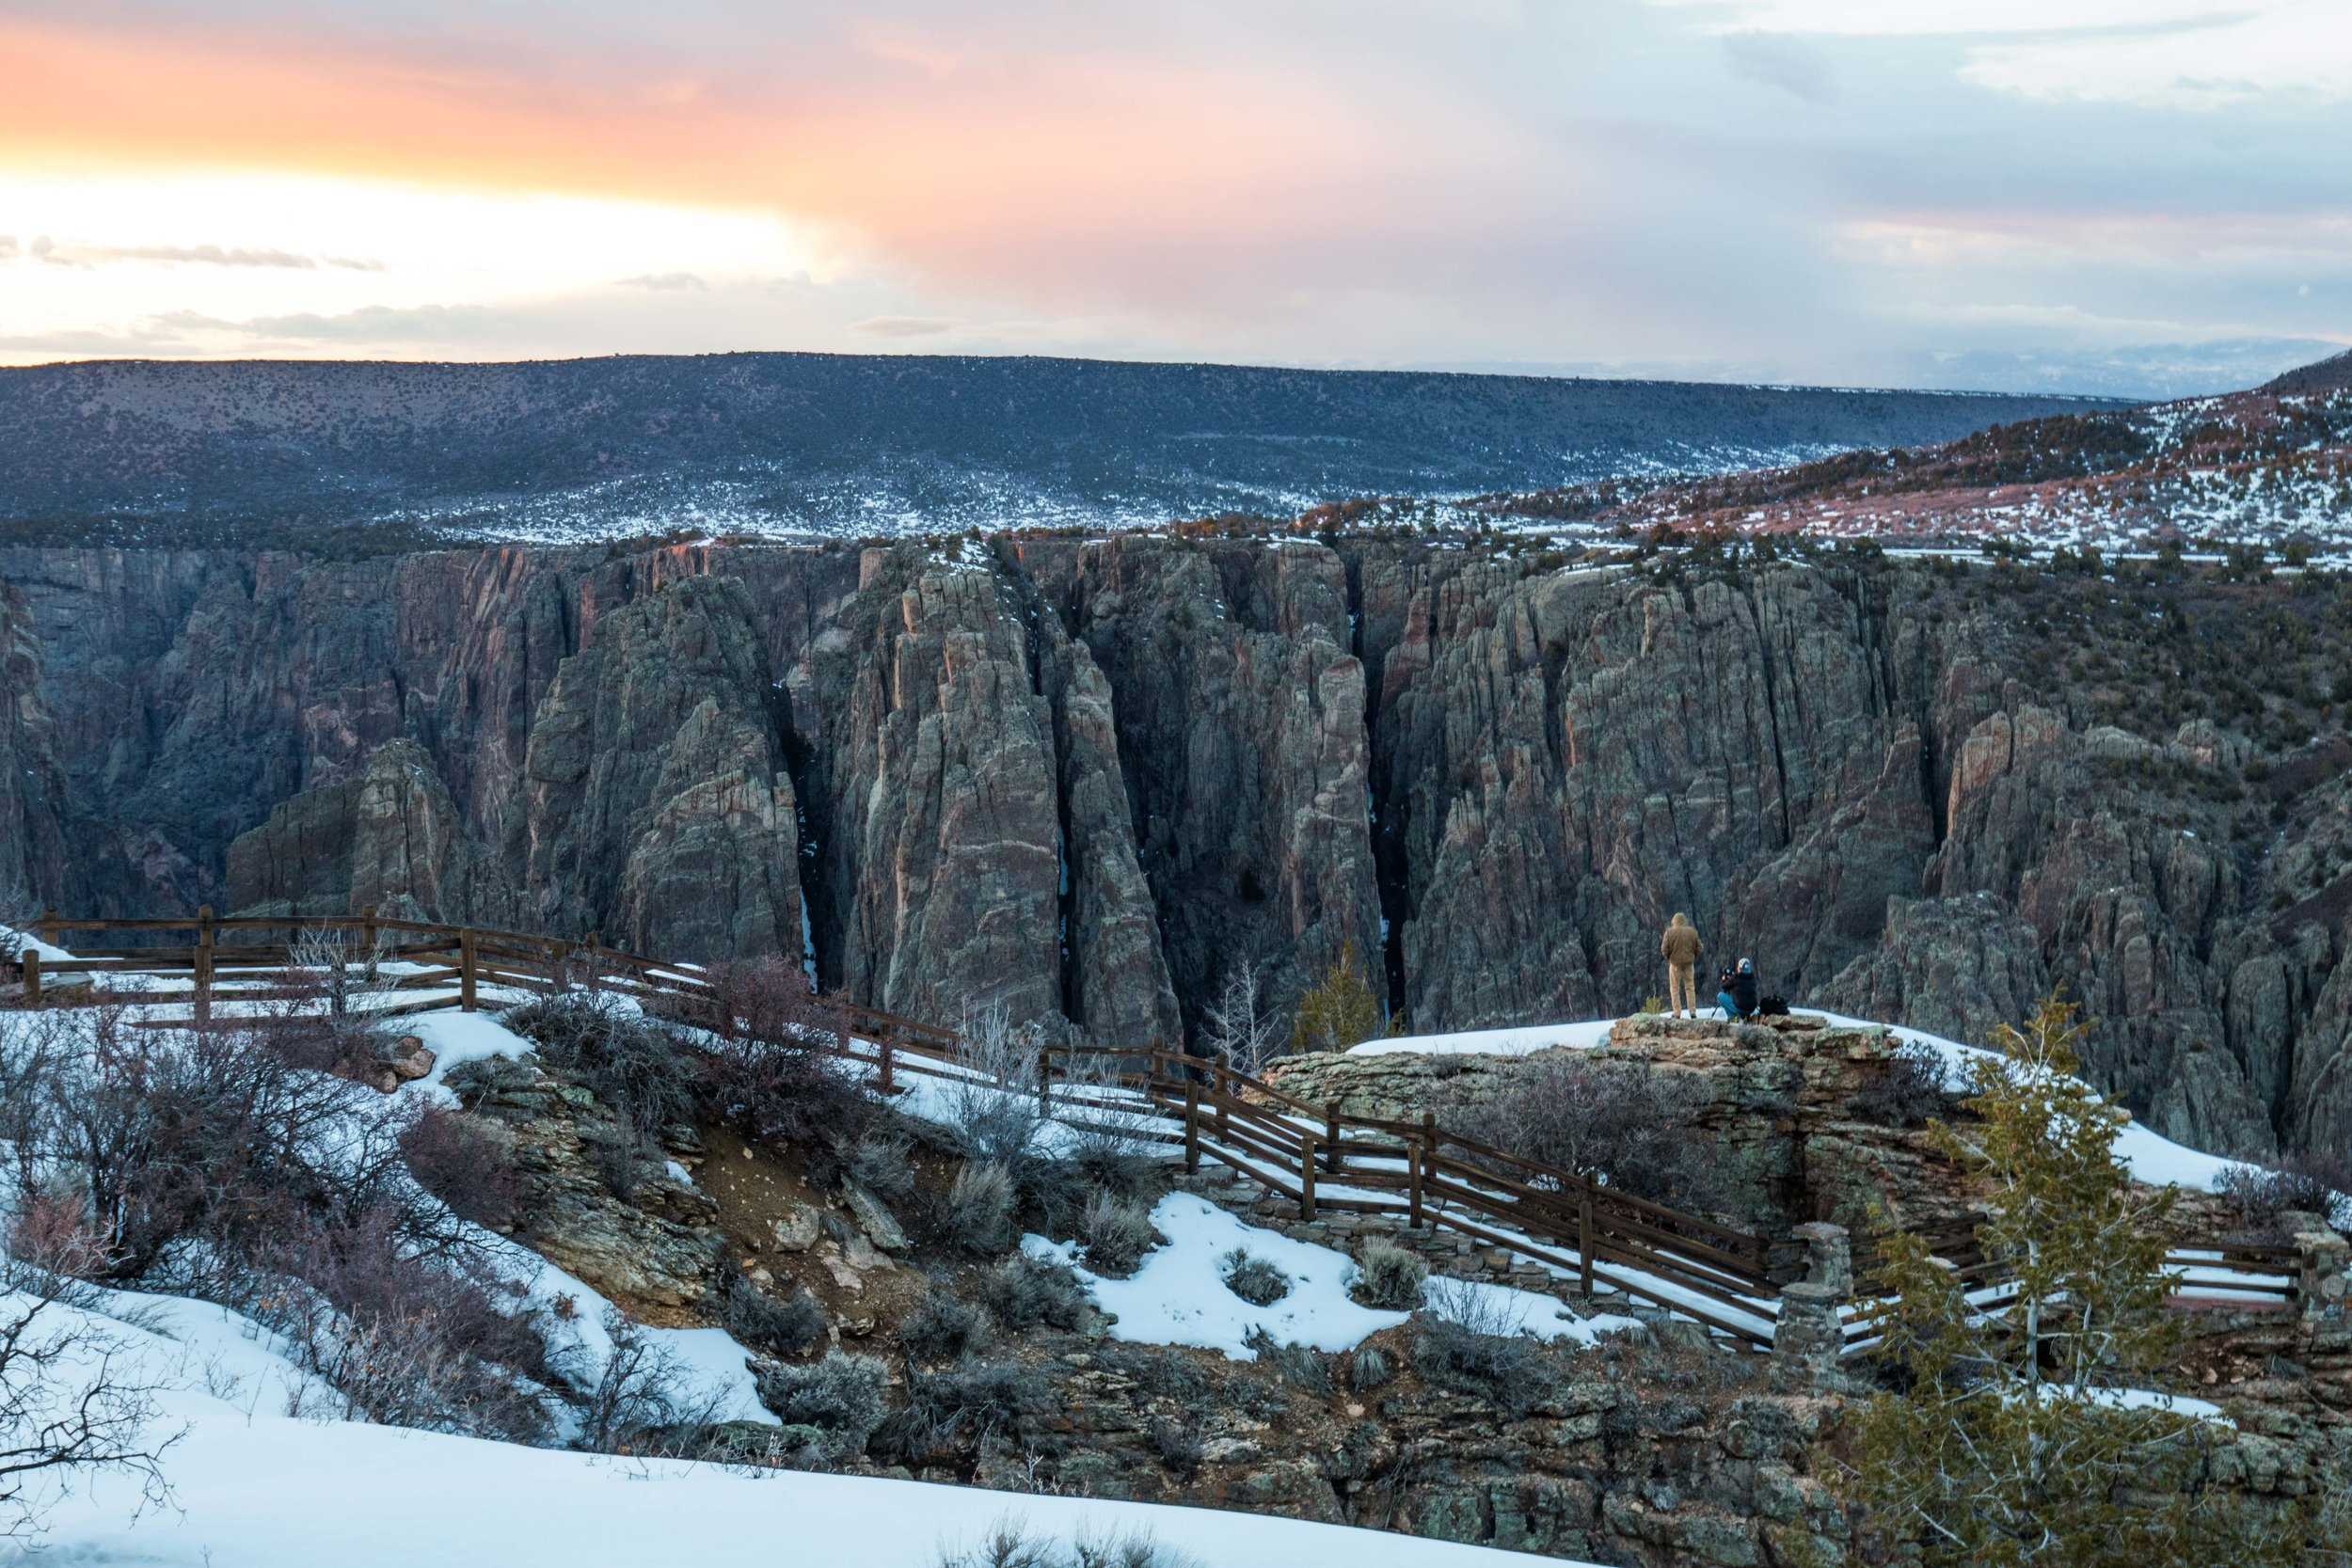 Black Canyon of the Gunnison - National Park